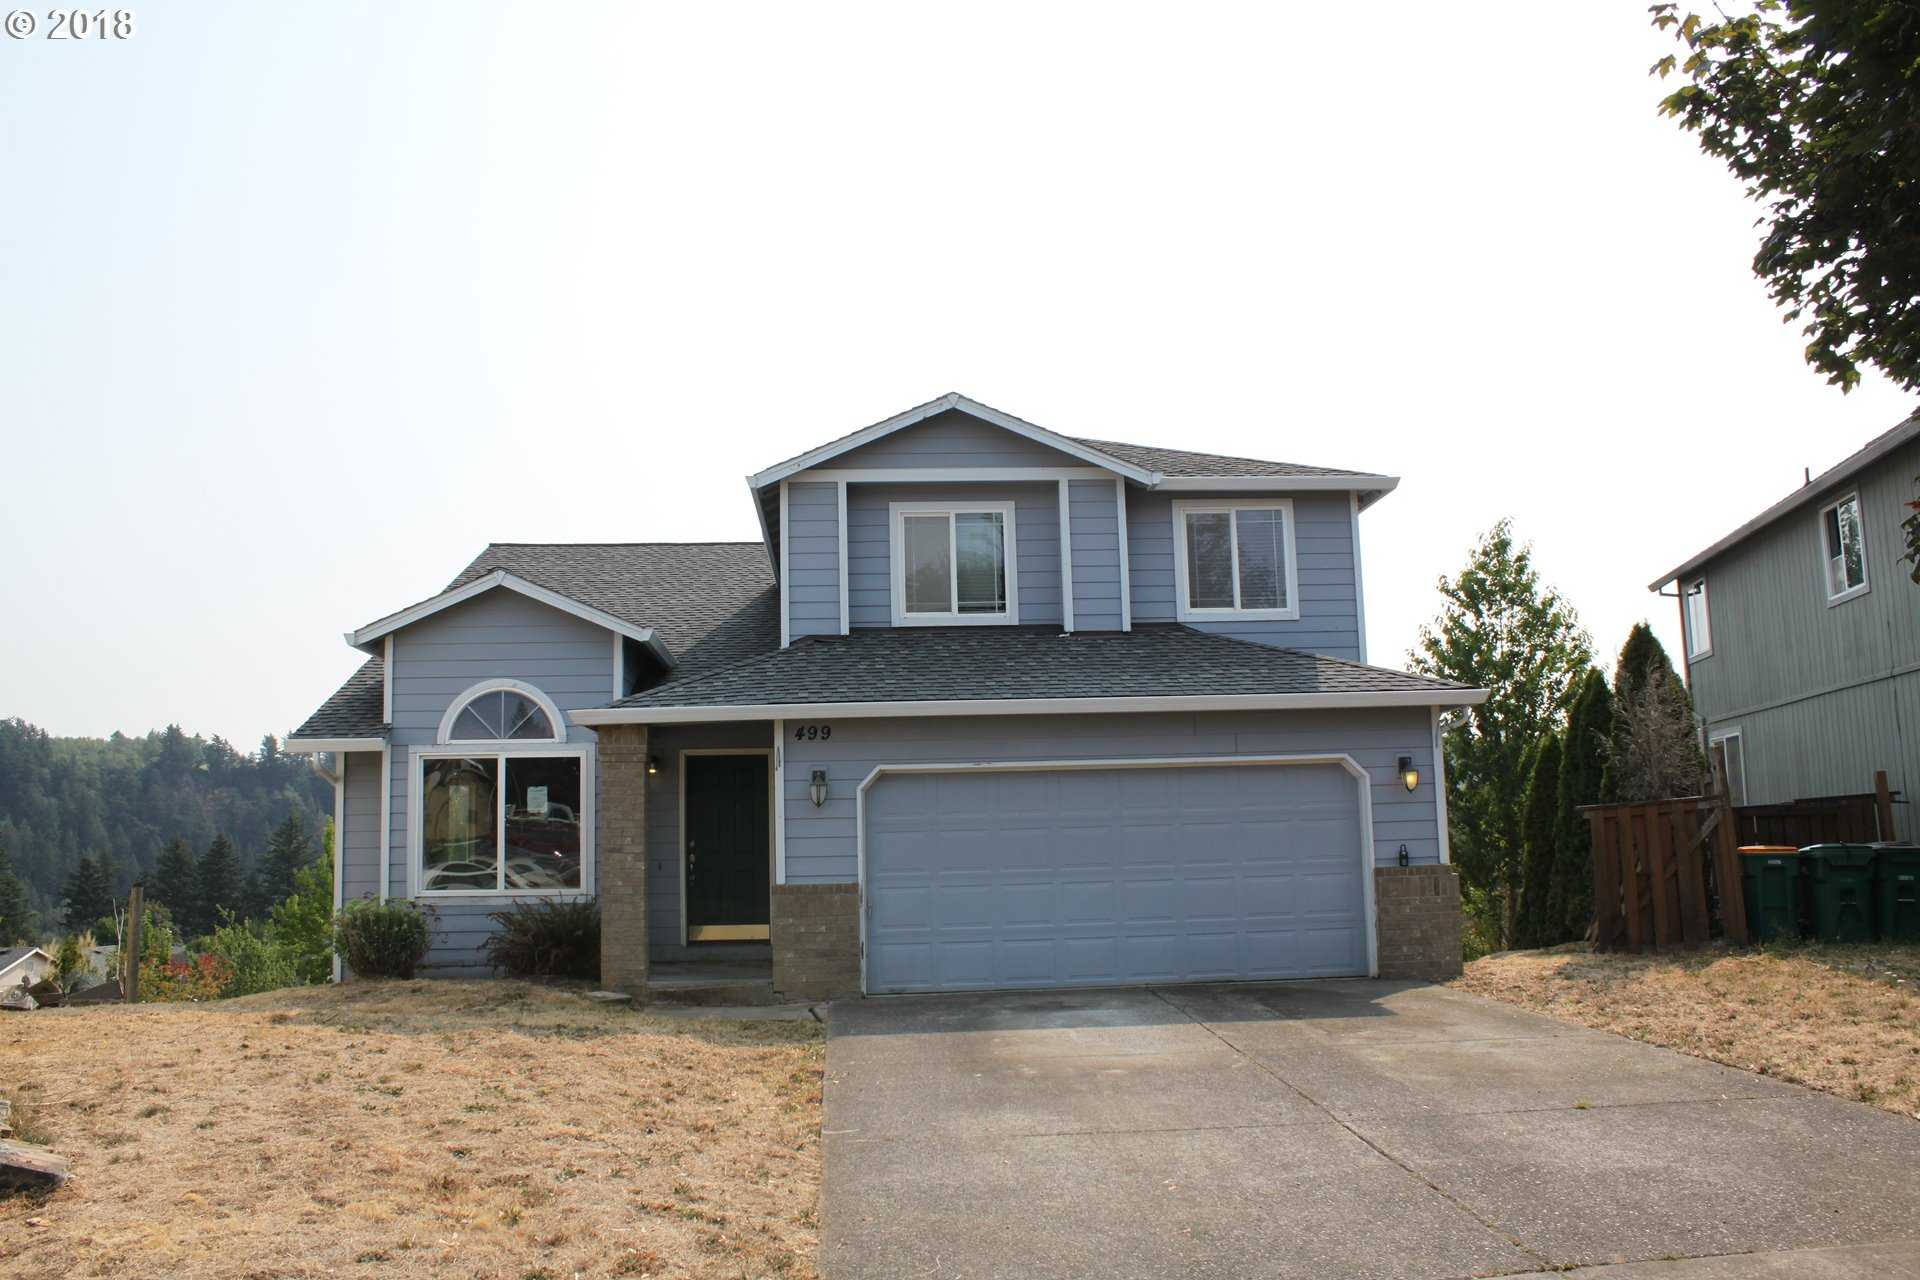 $369,900 - 4Br/3Ba -  for Sale in Troutdale